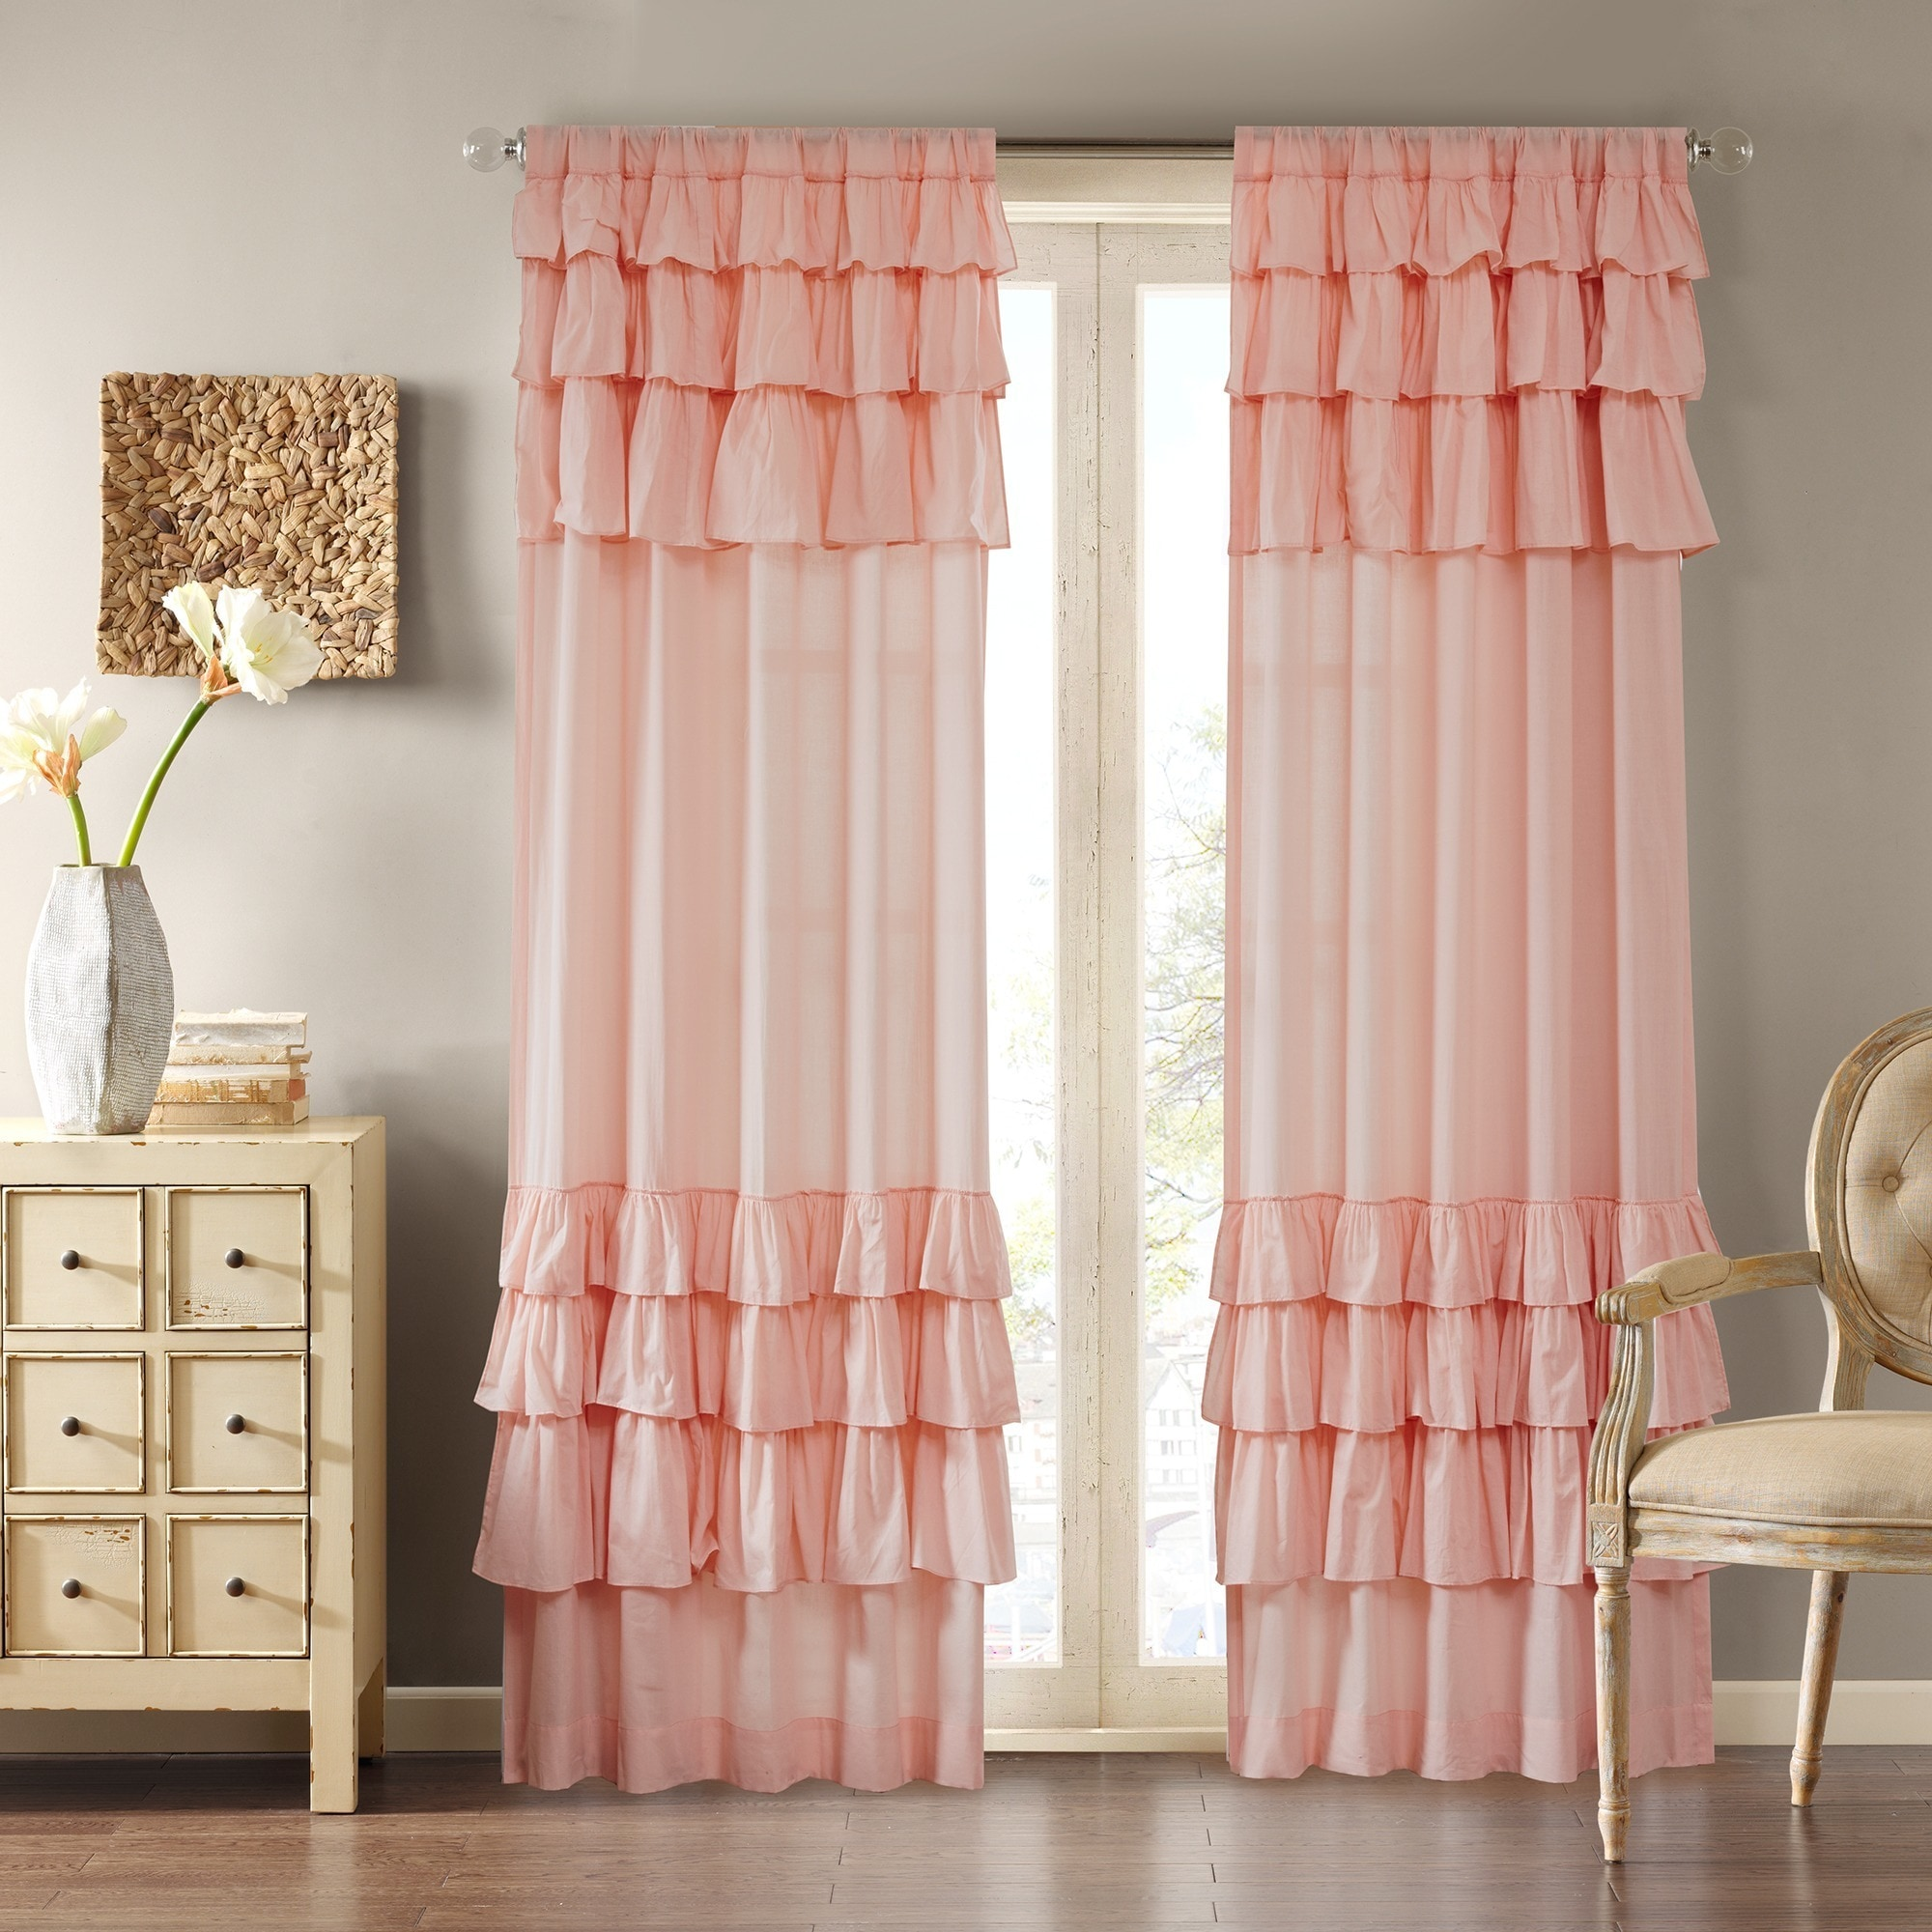 ruffle treatment voile curtain panel window ruffled panels sheer curtains gypsy pin